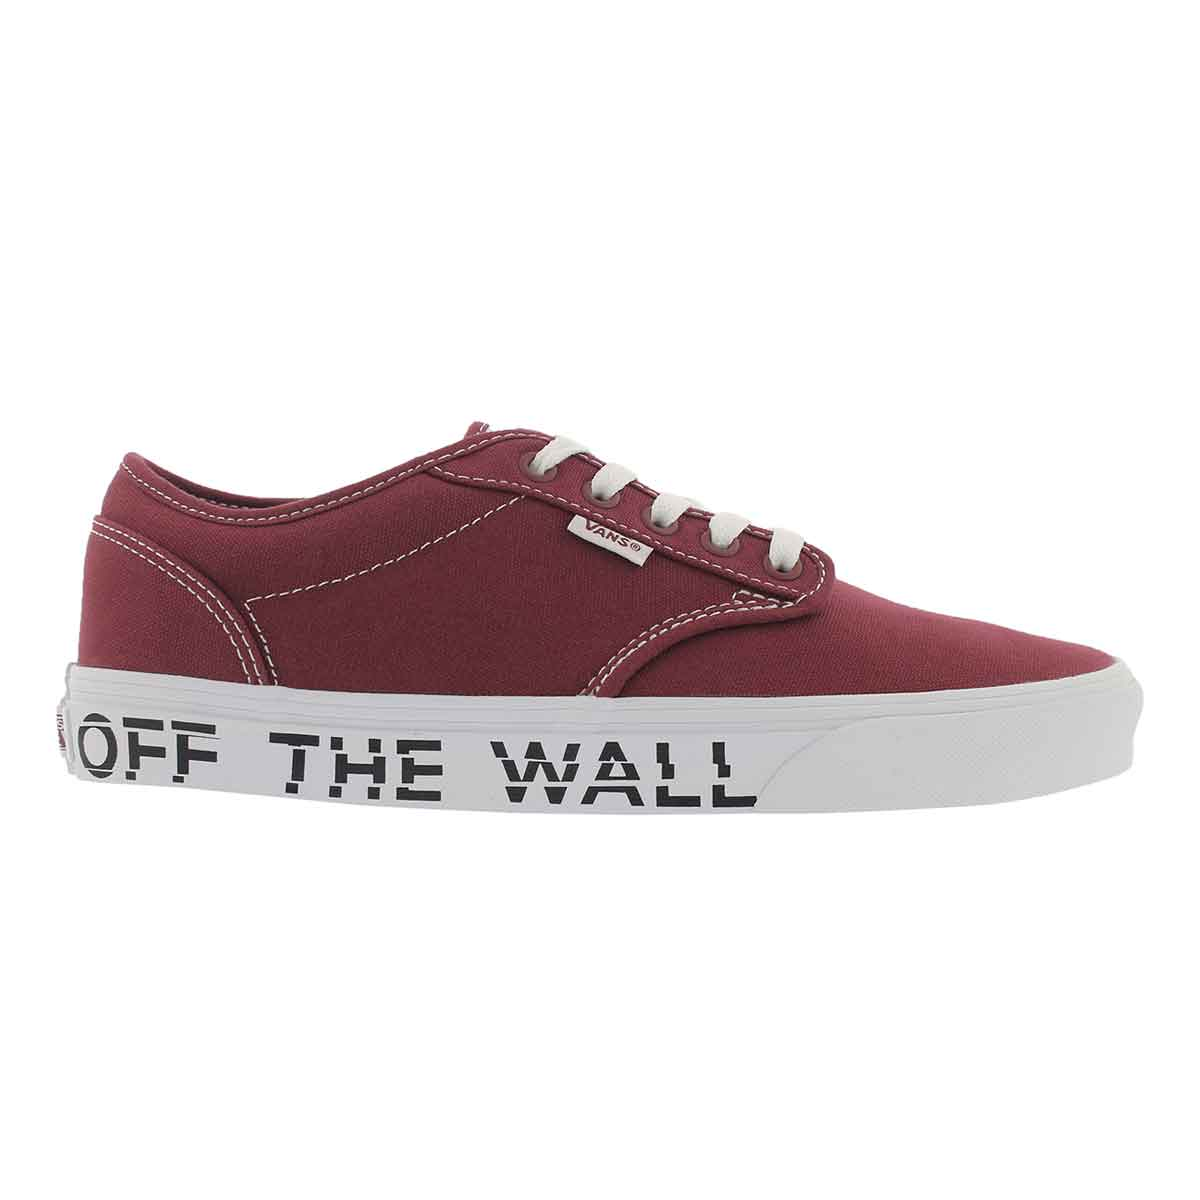 Mns Atwood printed fox oxbld/wht sneaker